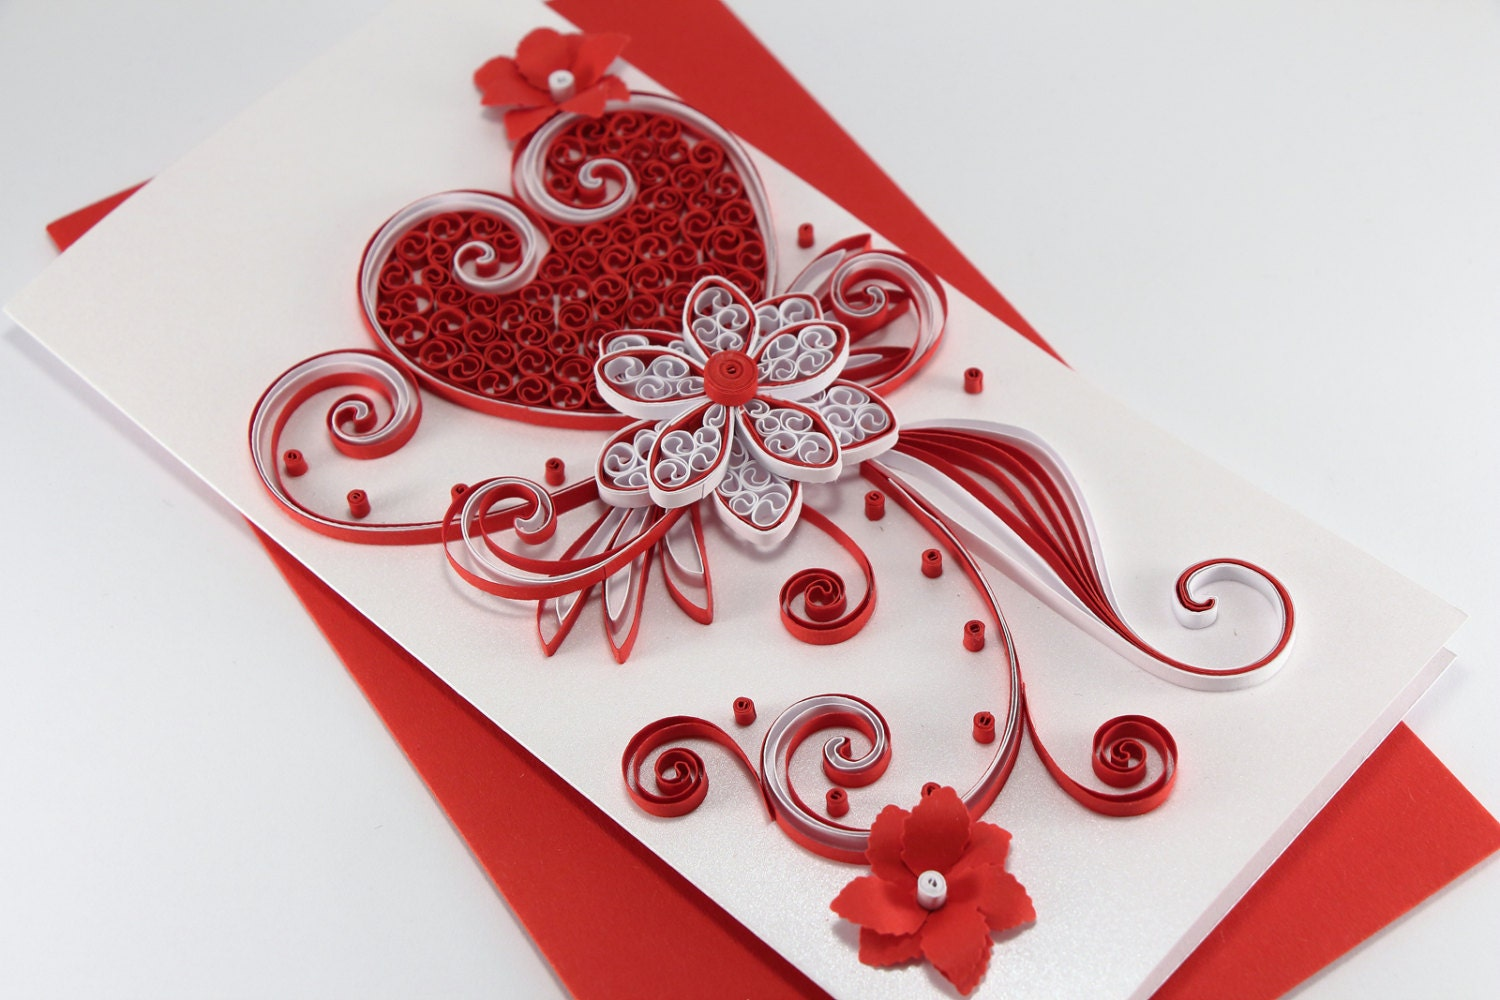 How To Make Handmade 3d Greeting Card Designs